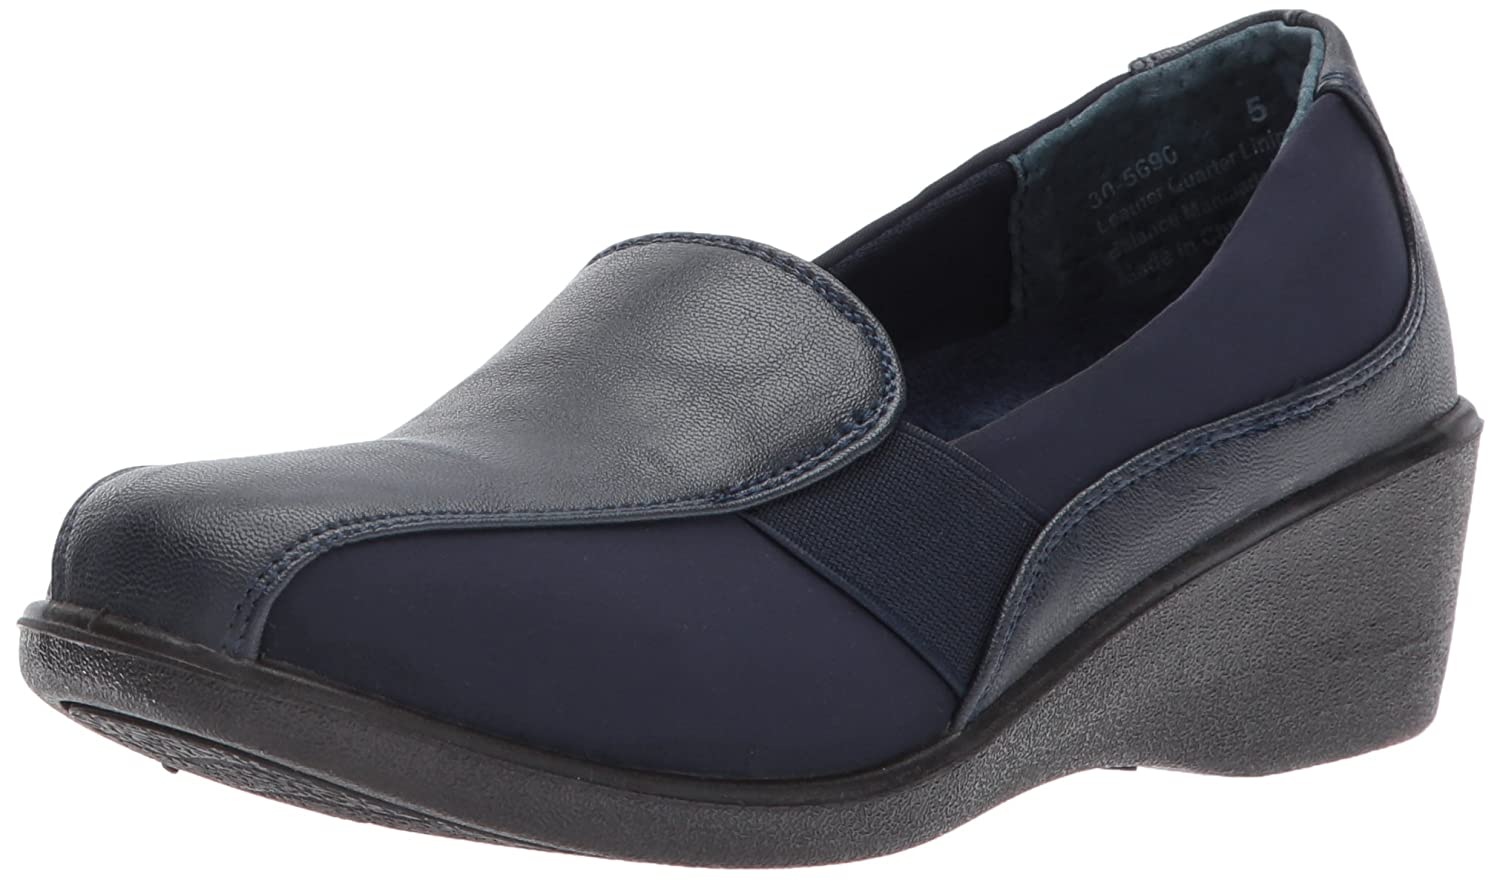 Easy Street Women's Dolores Flat B0717BDSFN 7.5 B(M) US|Navy/Stretch